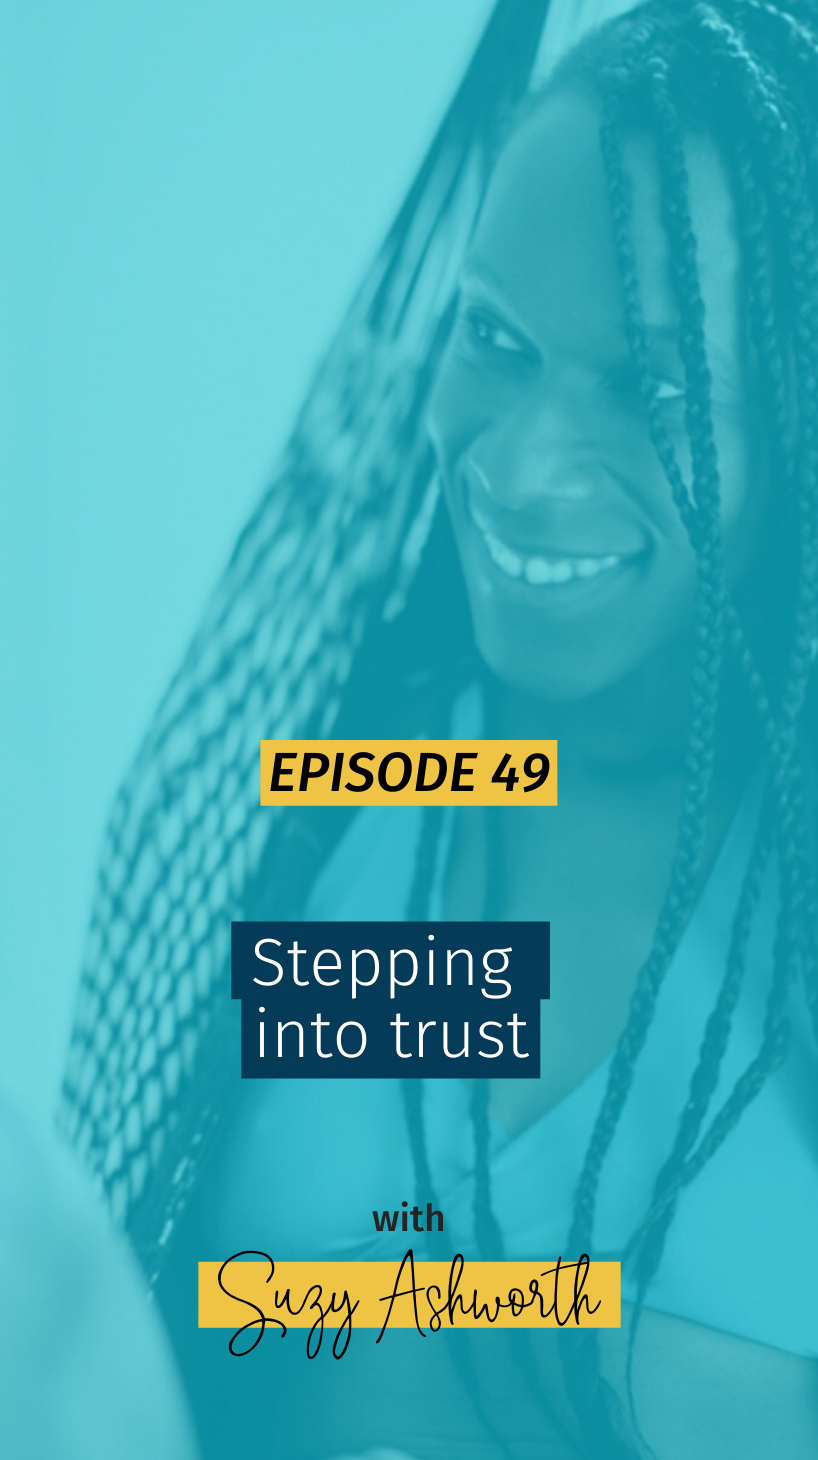 049 Stepping into trust